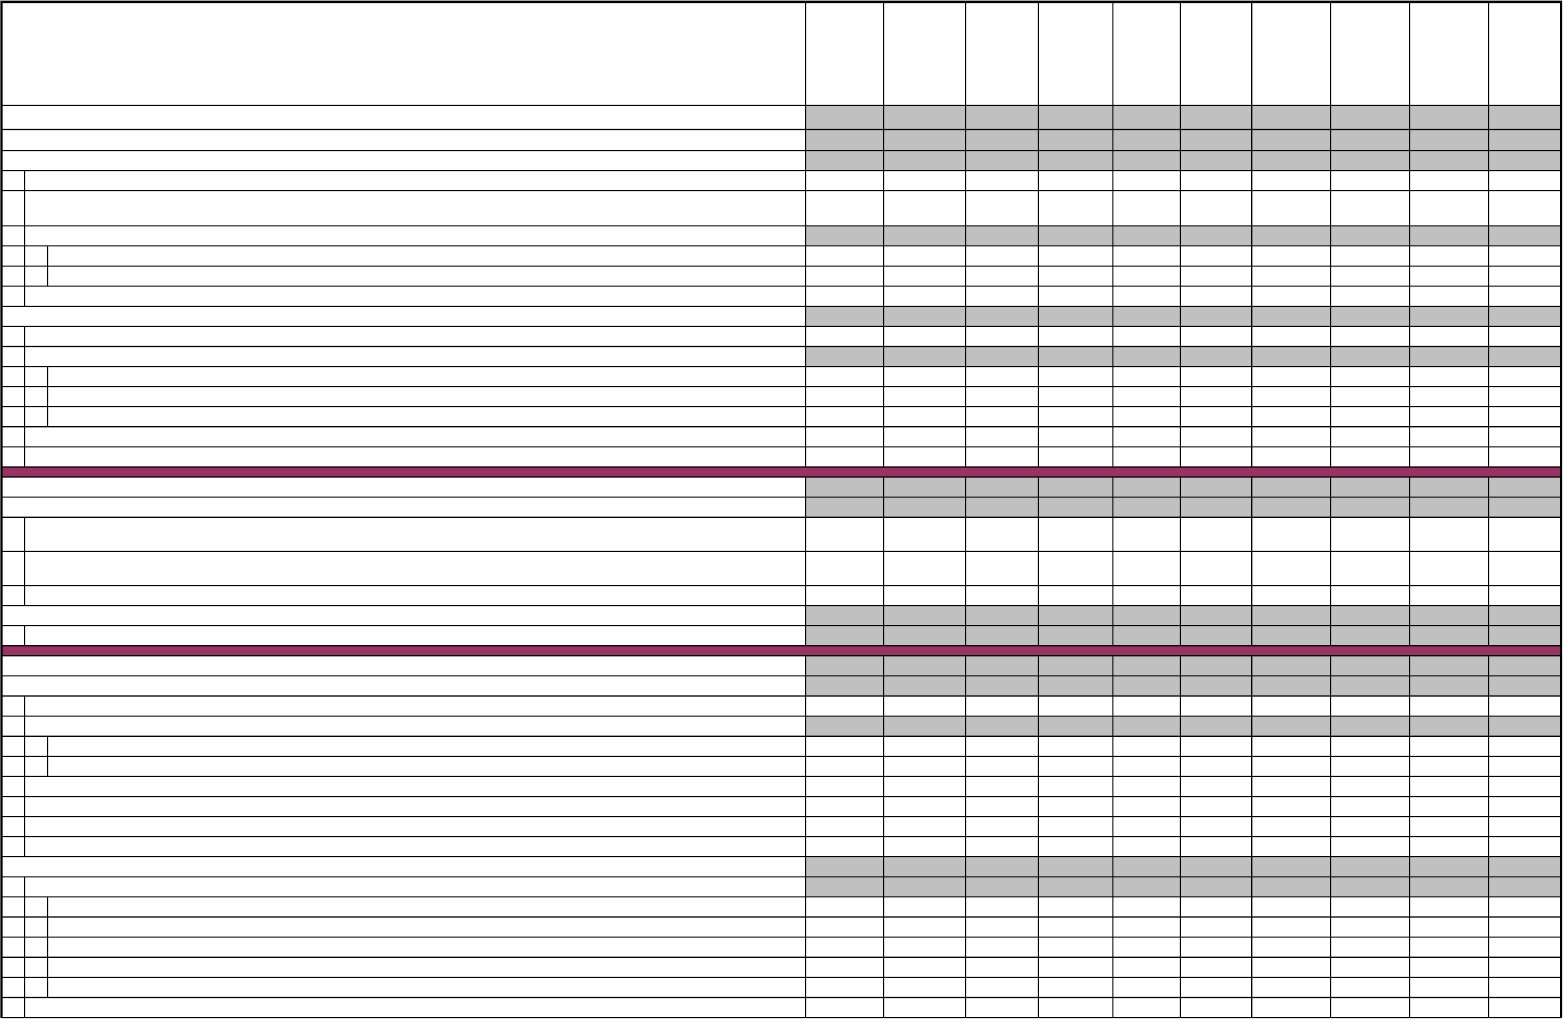 Download Gap Analysis Excel For Free Tidytemplates